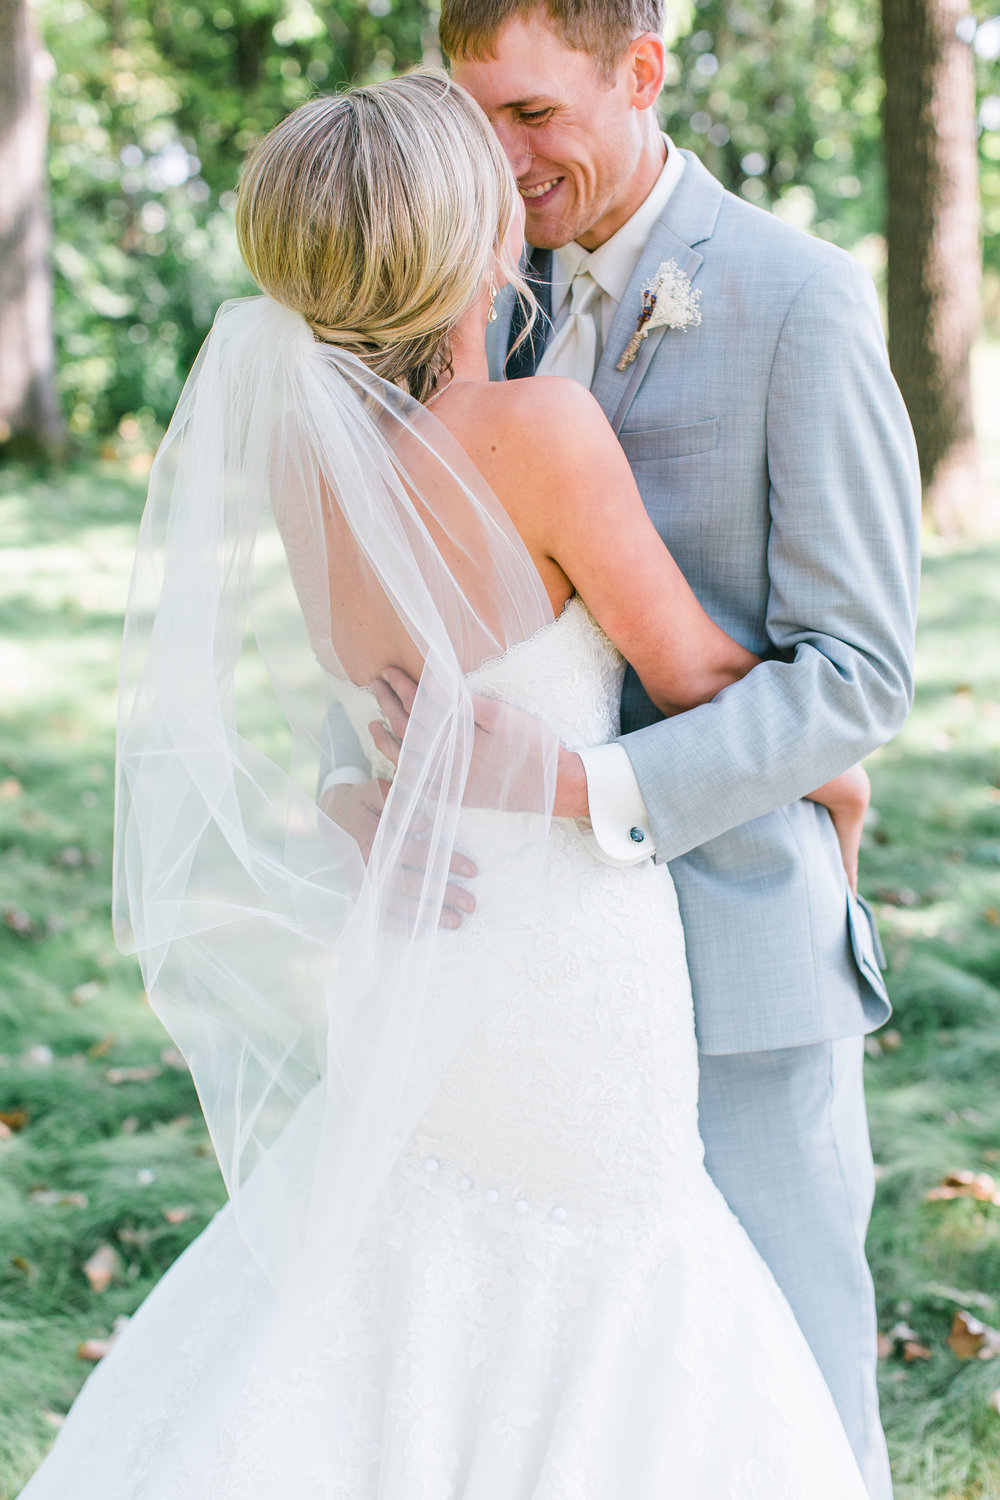 Minnesota bride and groom embracing on wedding day grey suit with veil Buffalo wedding Minnesota wedding photography Mallory Kiesow Photography